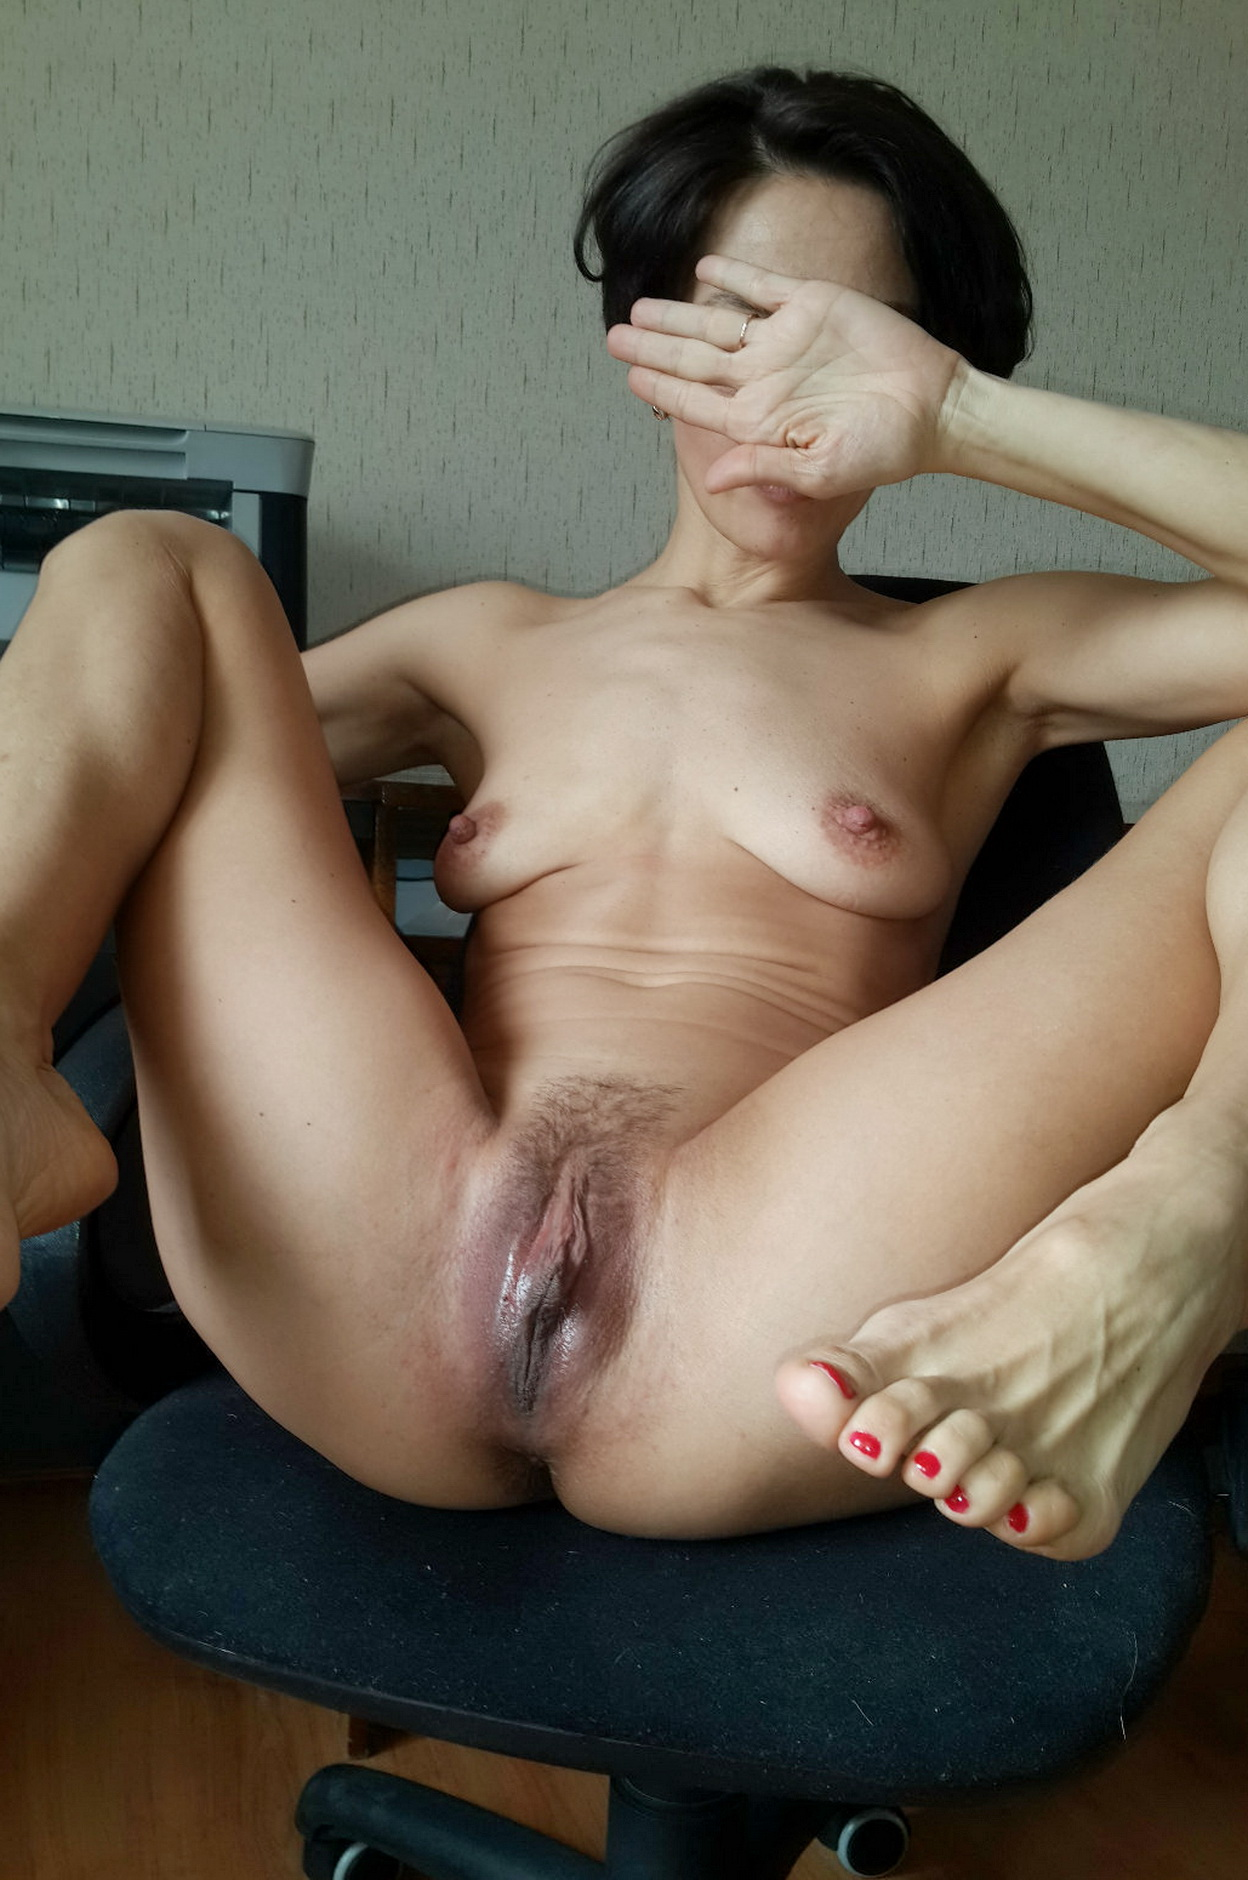 Biggestest cock in the world